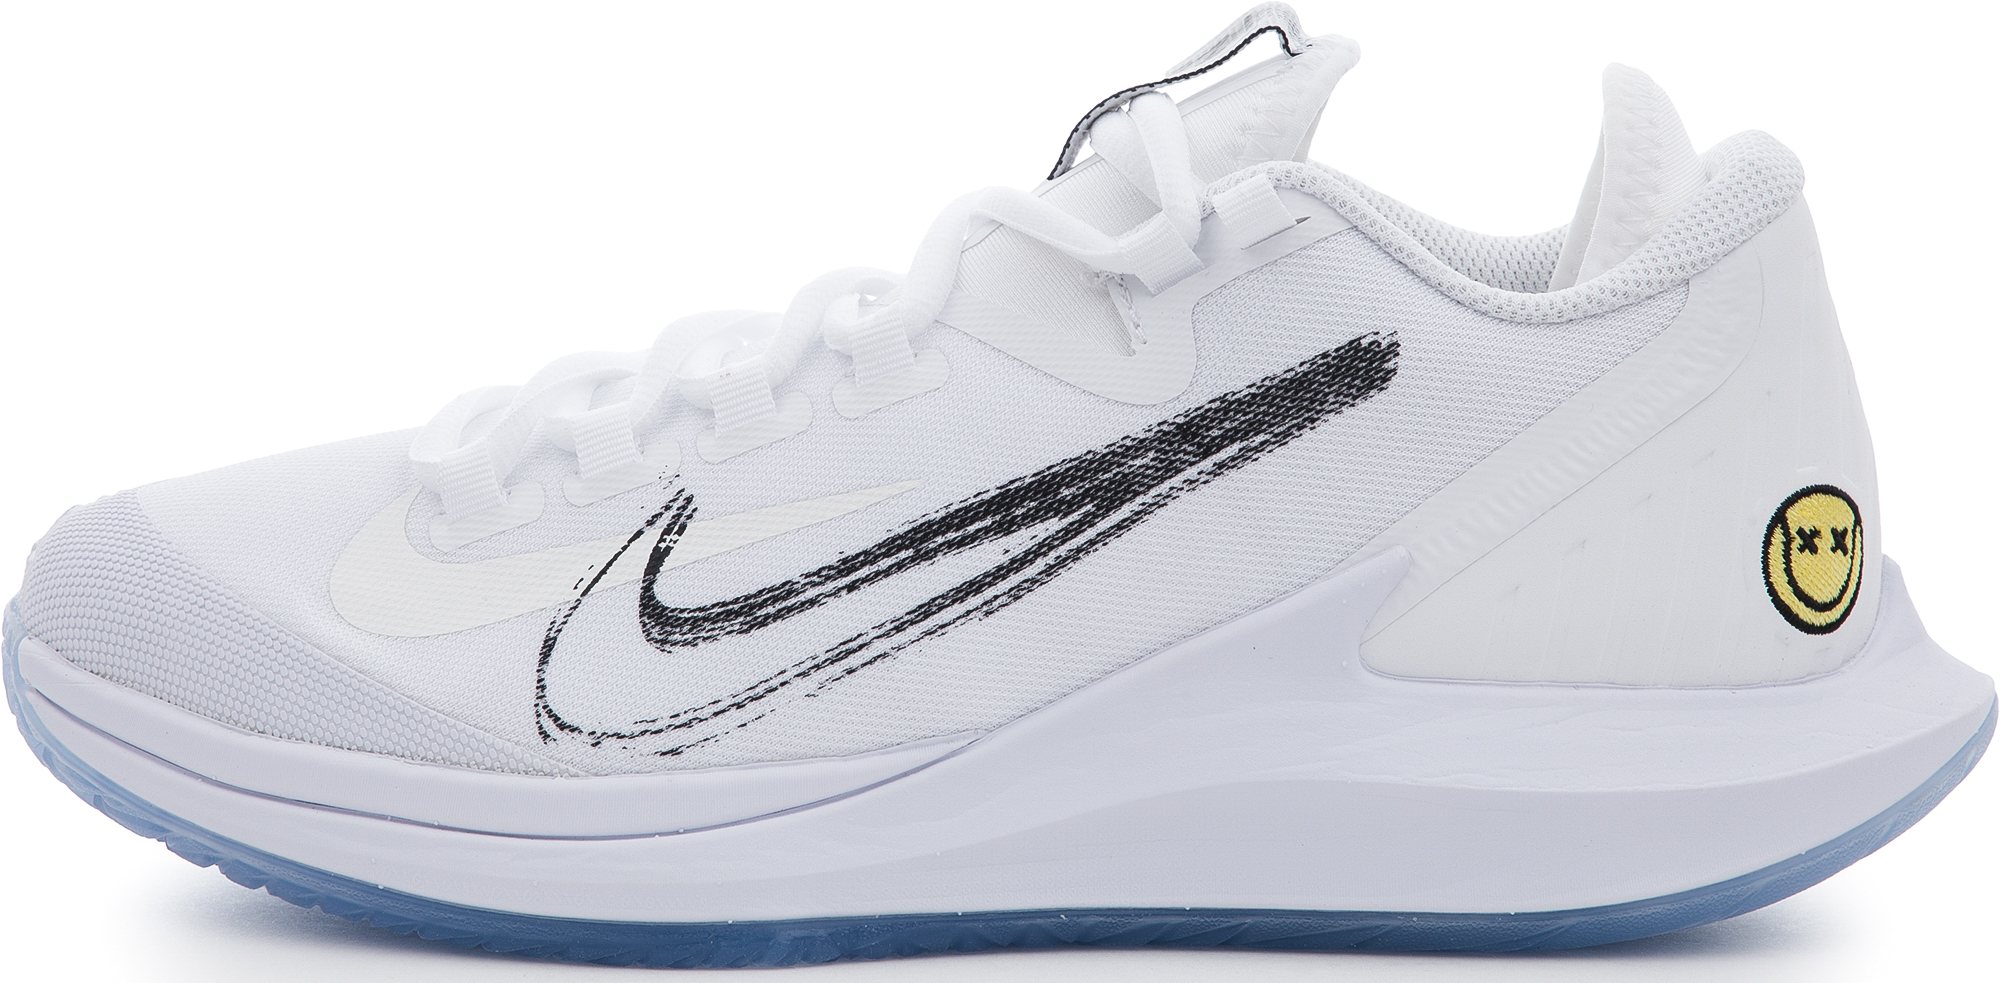 Nike Кроссовки женские Nike Court Air Zoom, размер 40 кроссовки nike кроссовки женские nike court royale ac размер 40